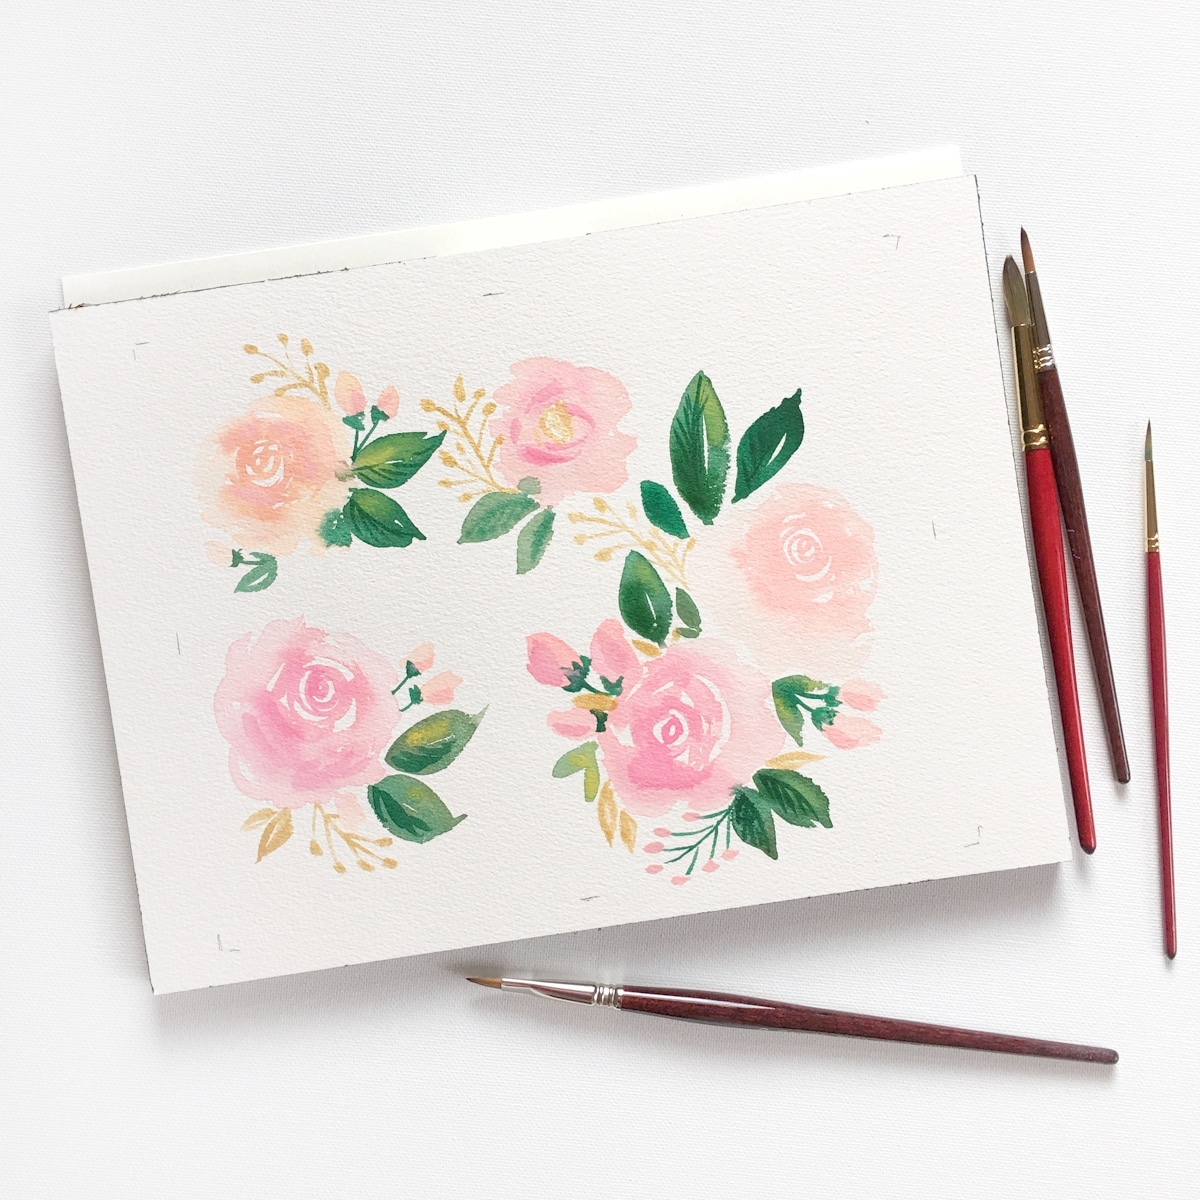 custom wedding invitations portfolio watercolor wedding invitations All stationery is printed at Mospens Studio to ensure the highest quality Ready to start your custom designed invitation Contact us today for a quote